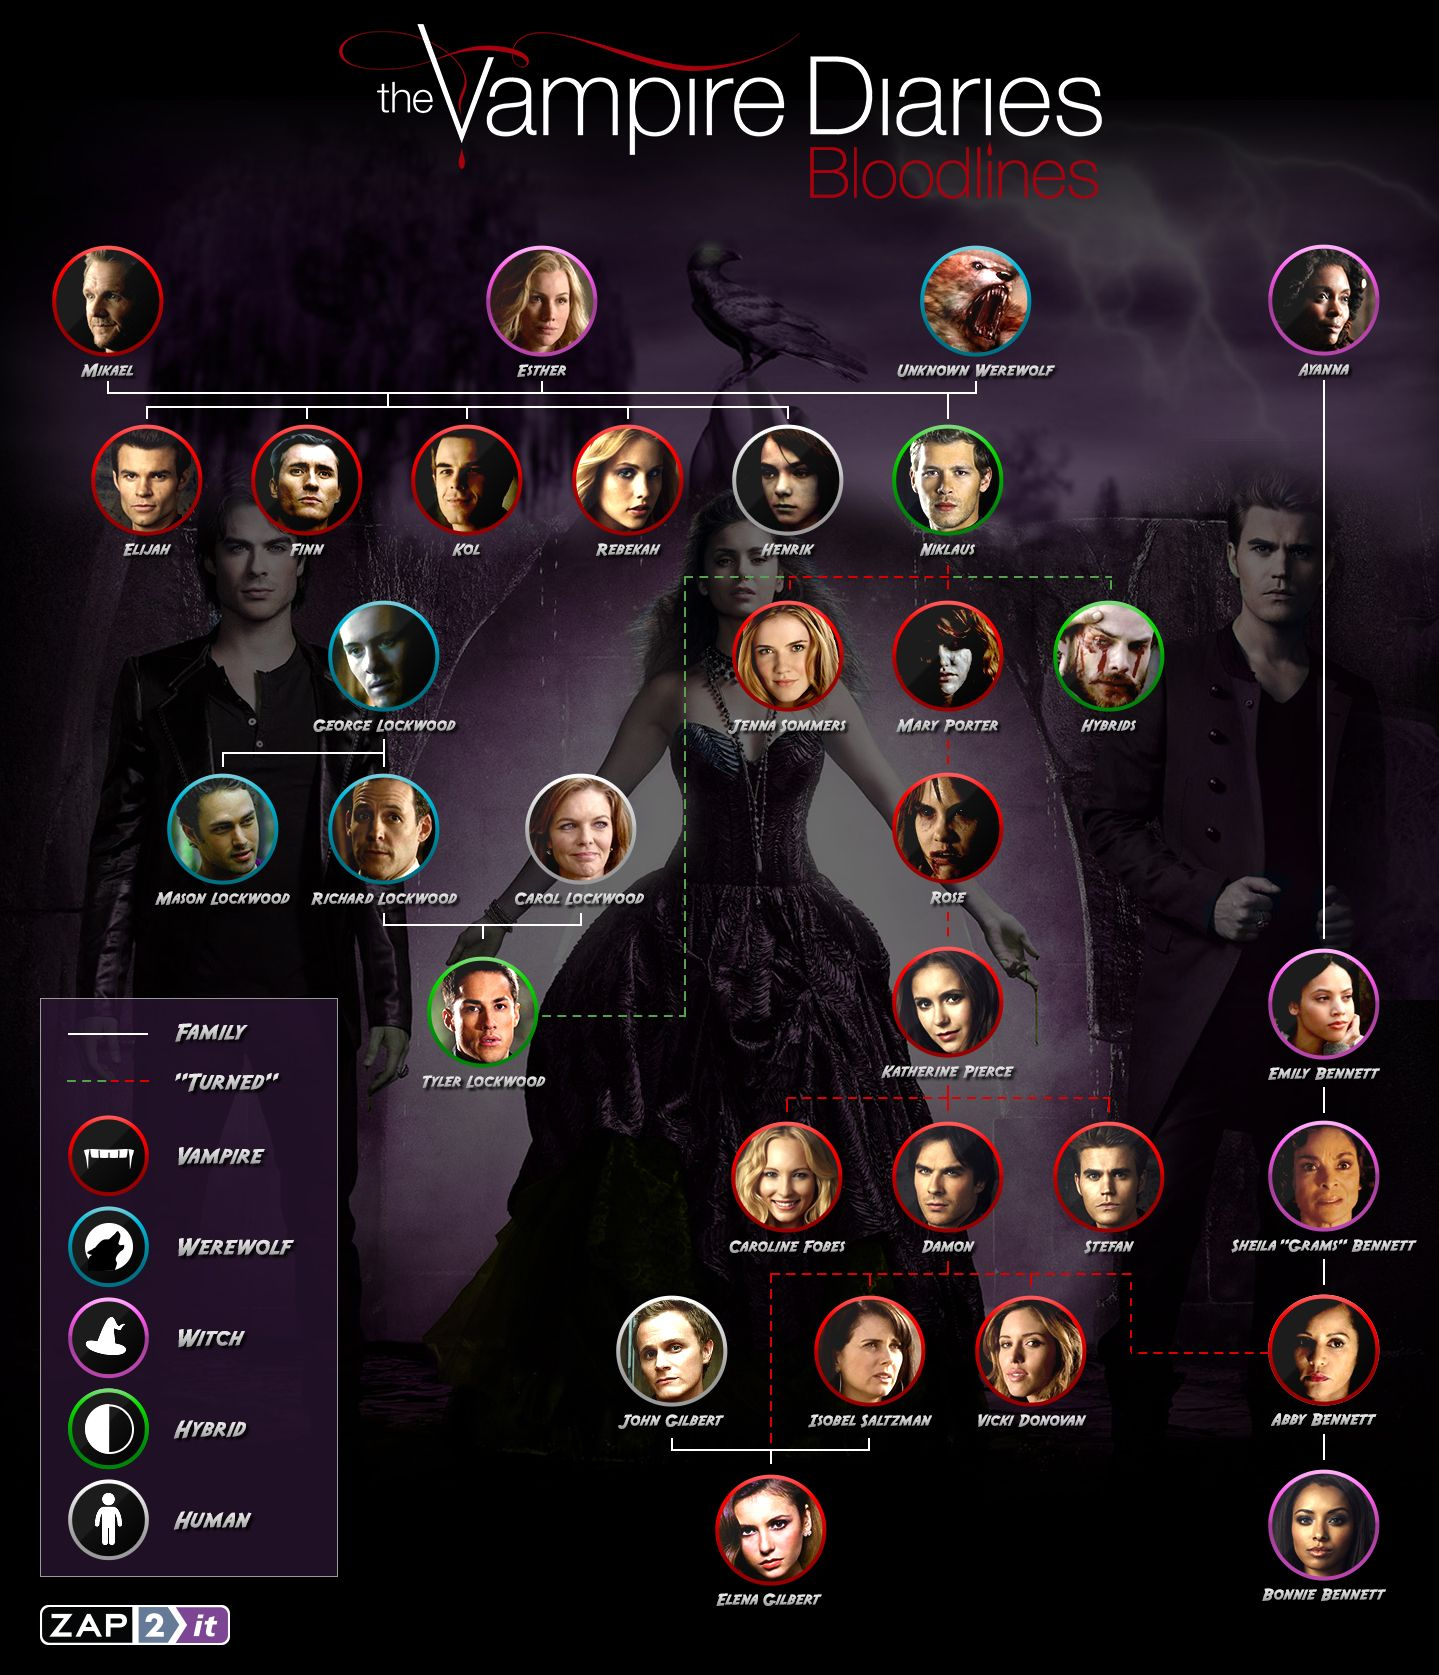 The Vampire Diaries Bloodlines Get To Know The Complicated Family Tree With Our Infographic